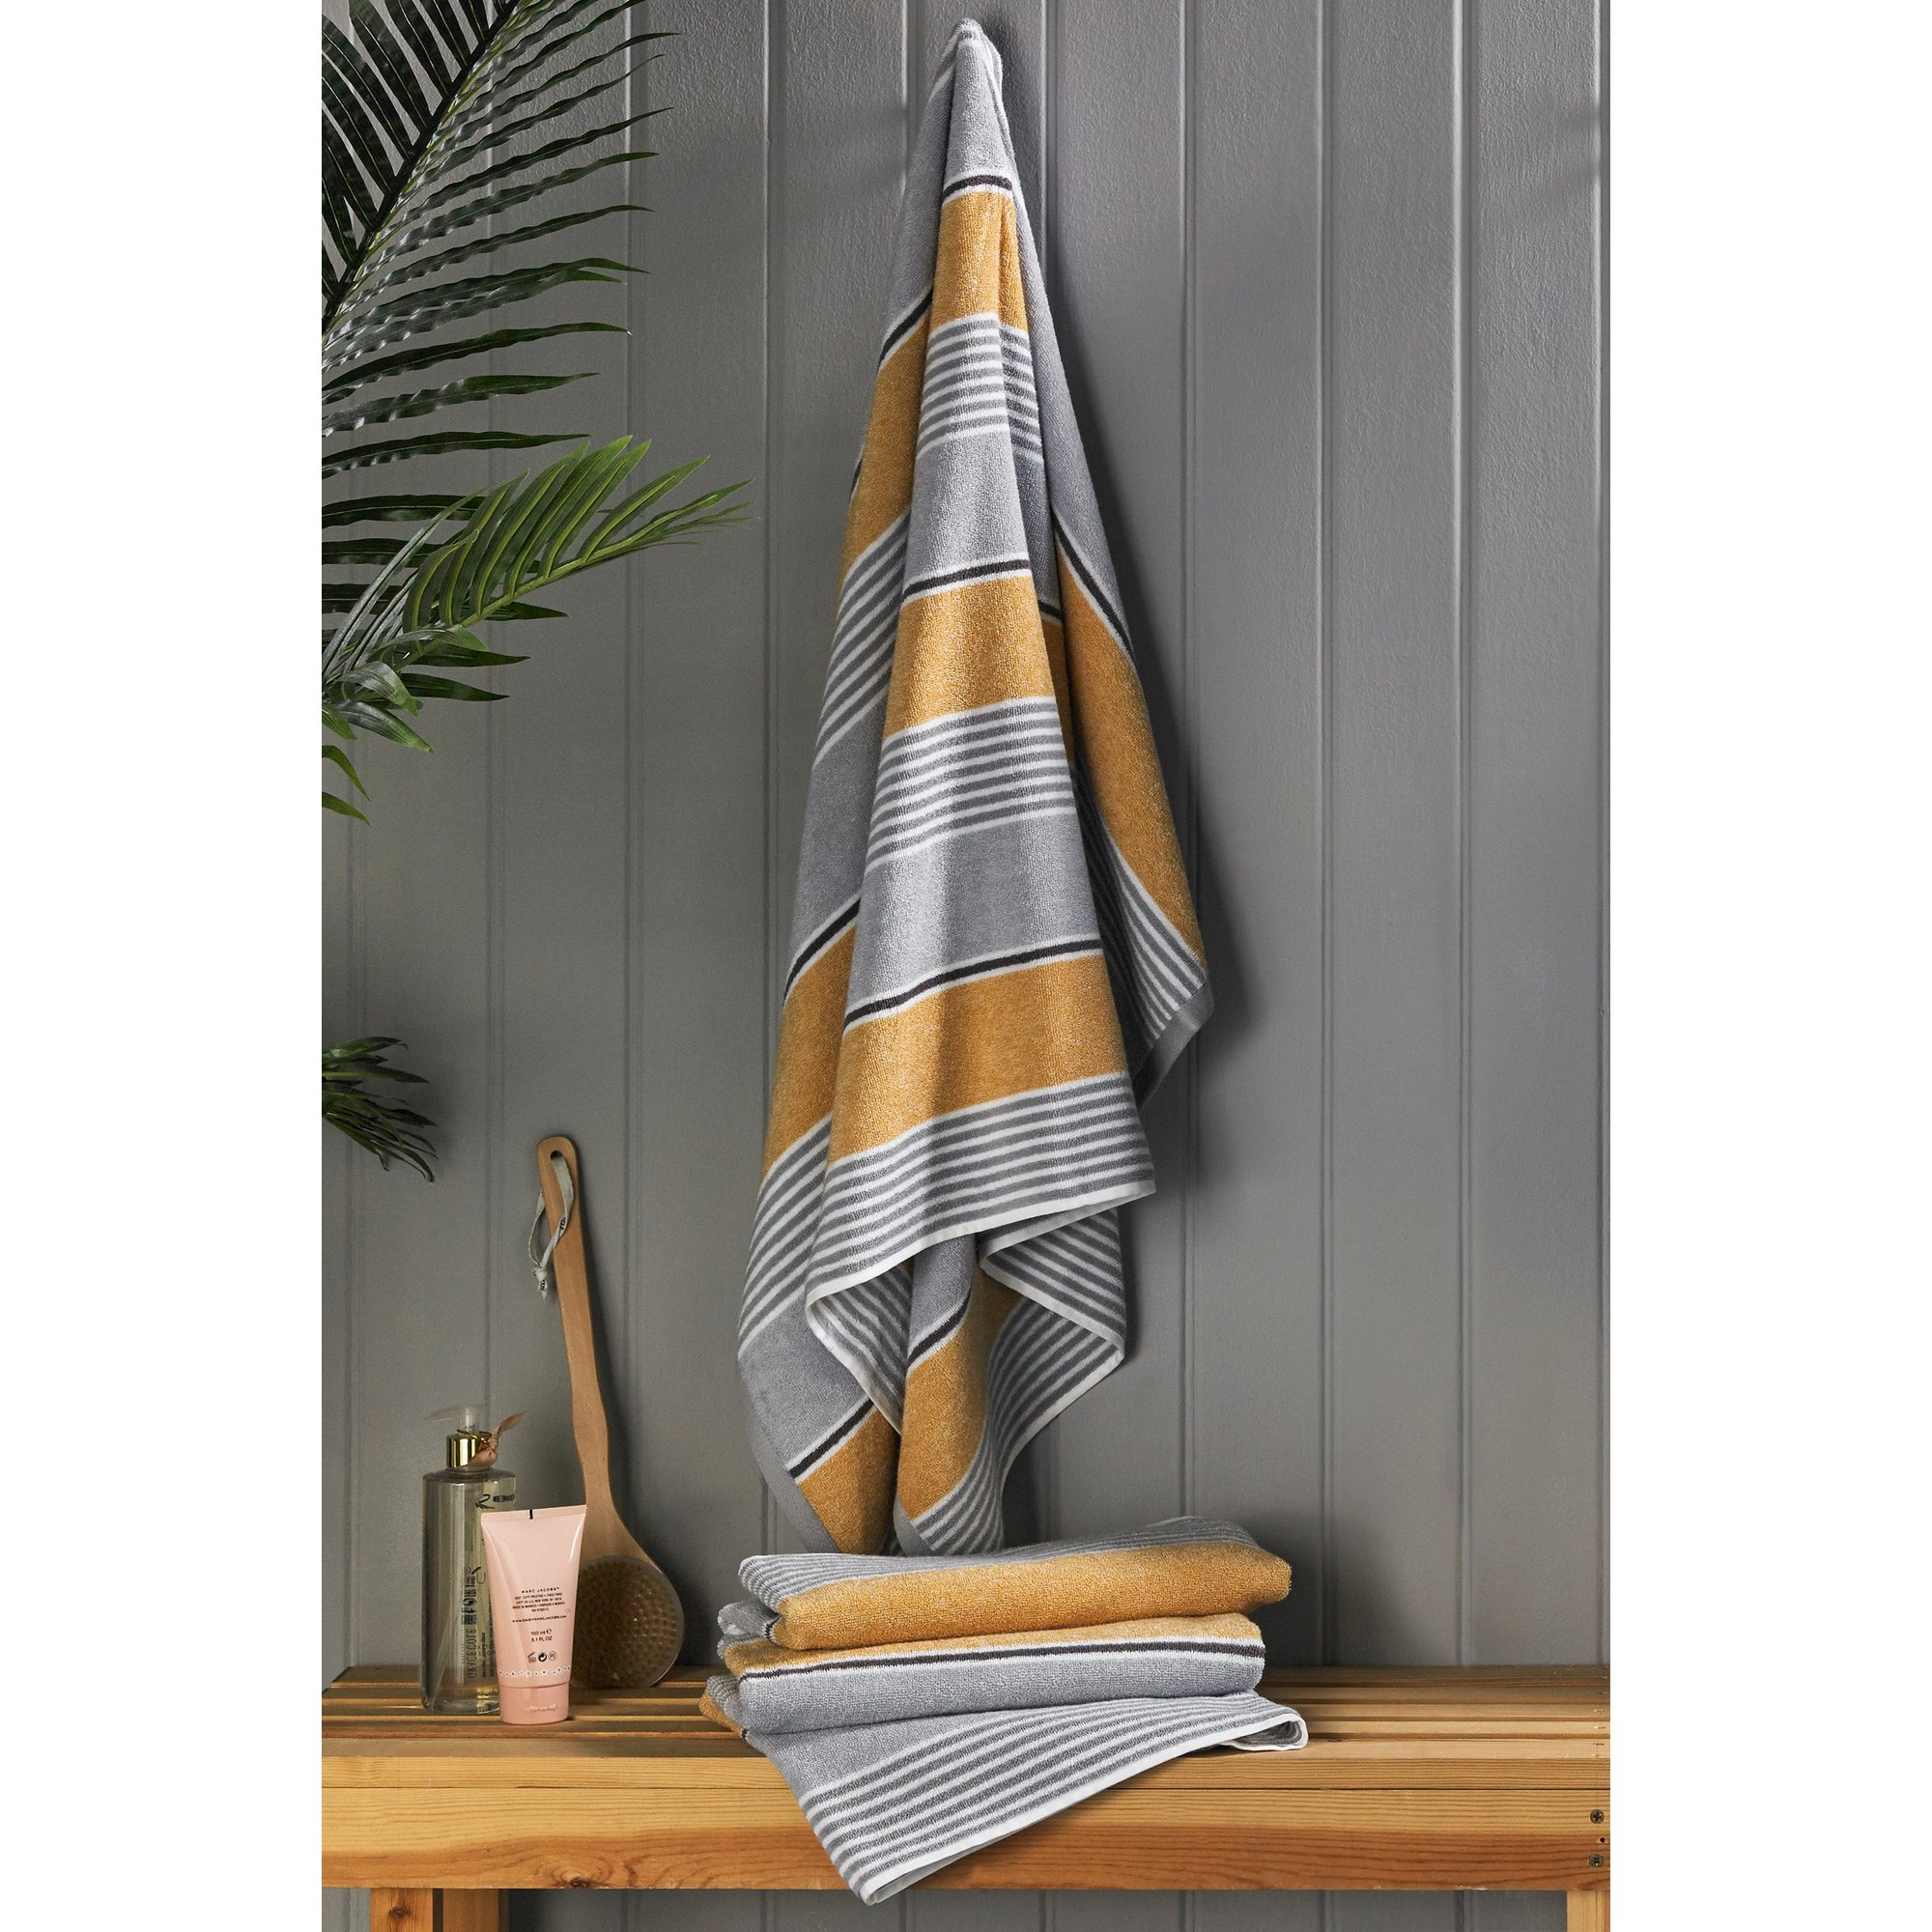 Image of Catherine Lansfield Textured Stripe 2 Pack Towels